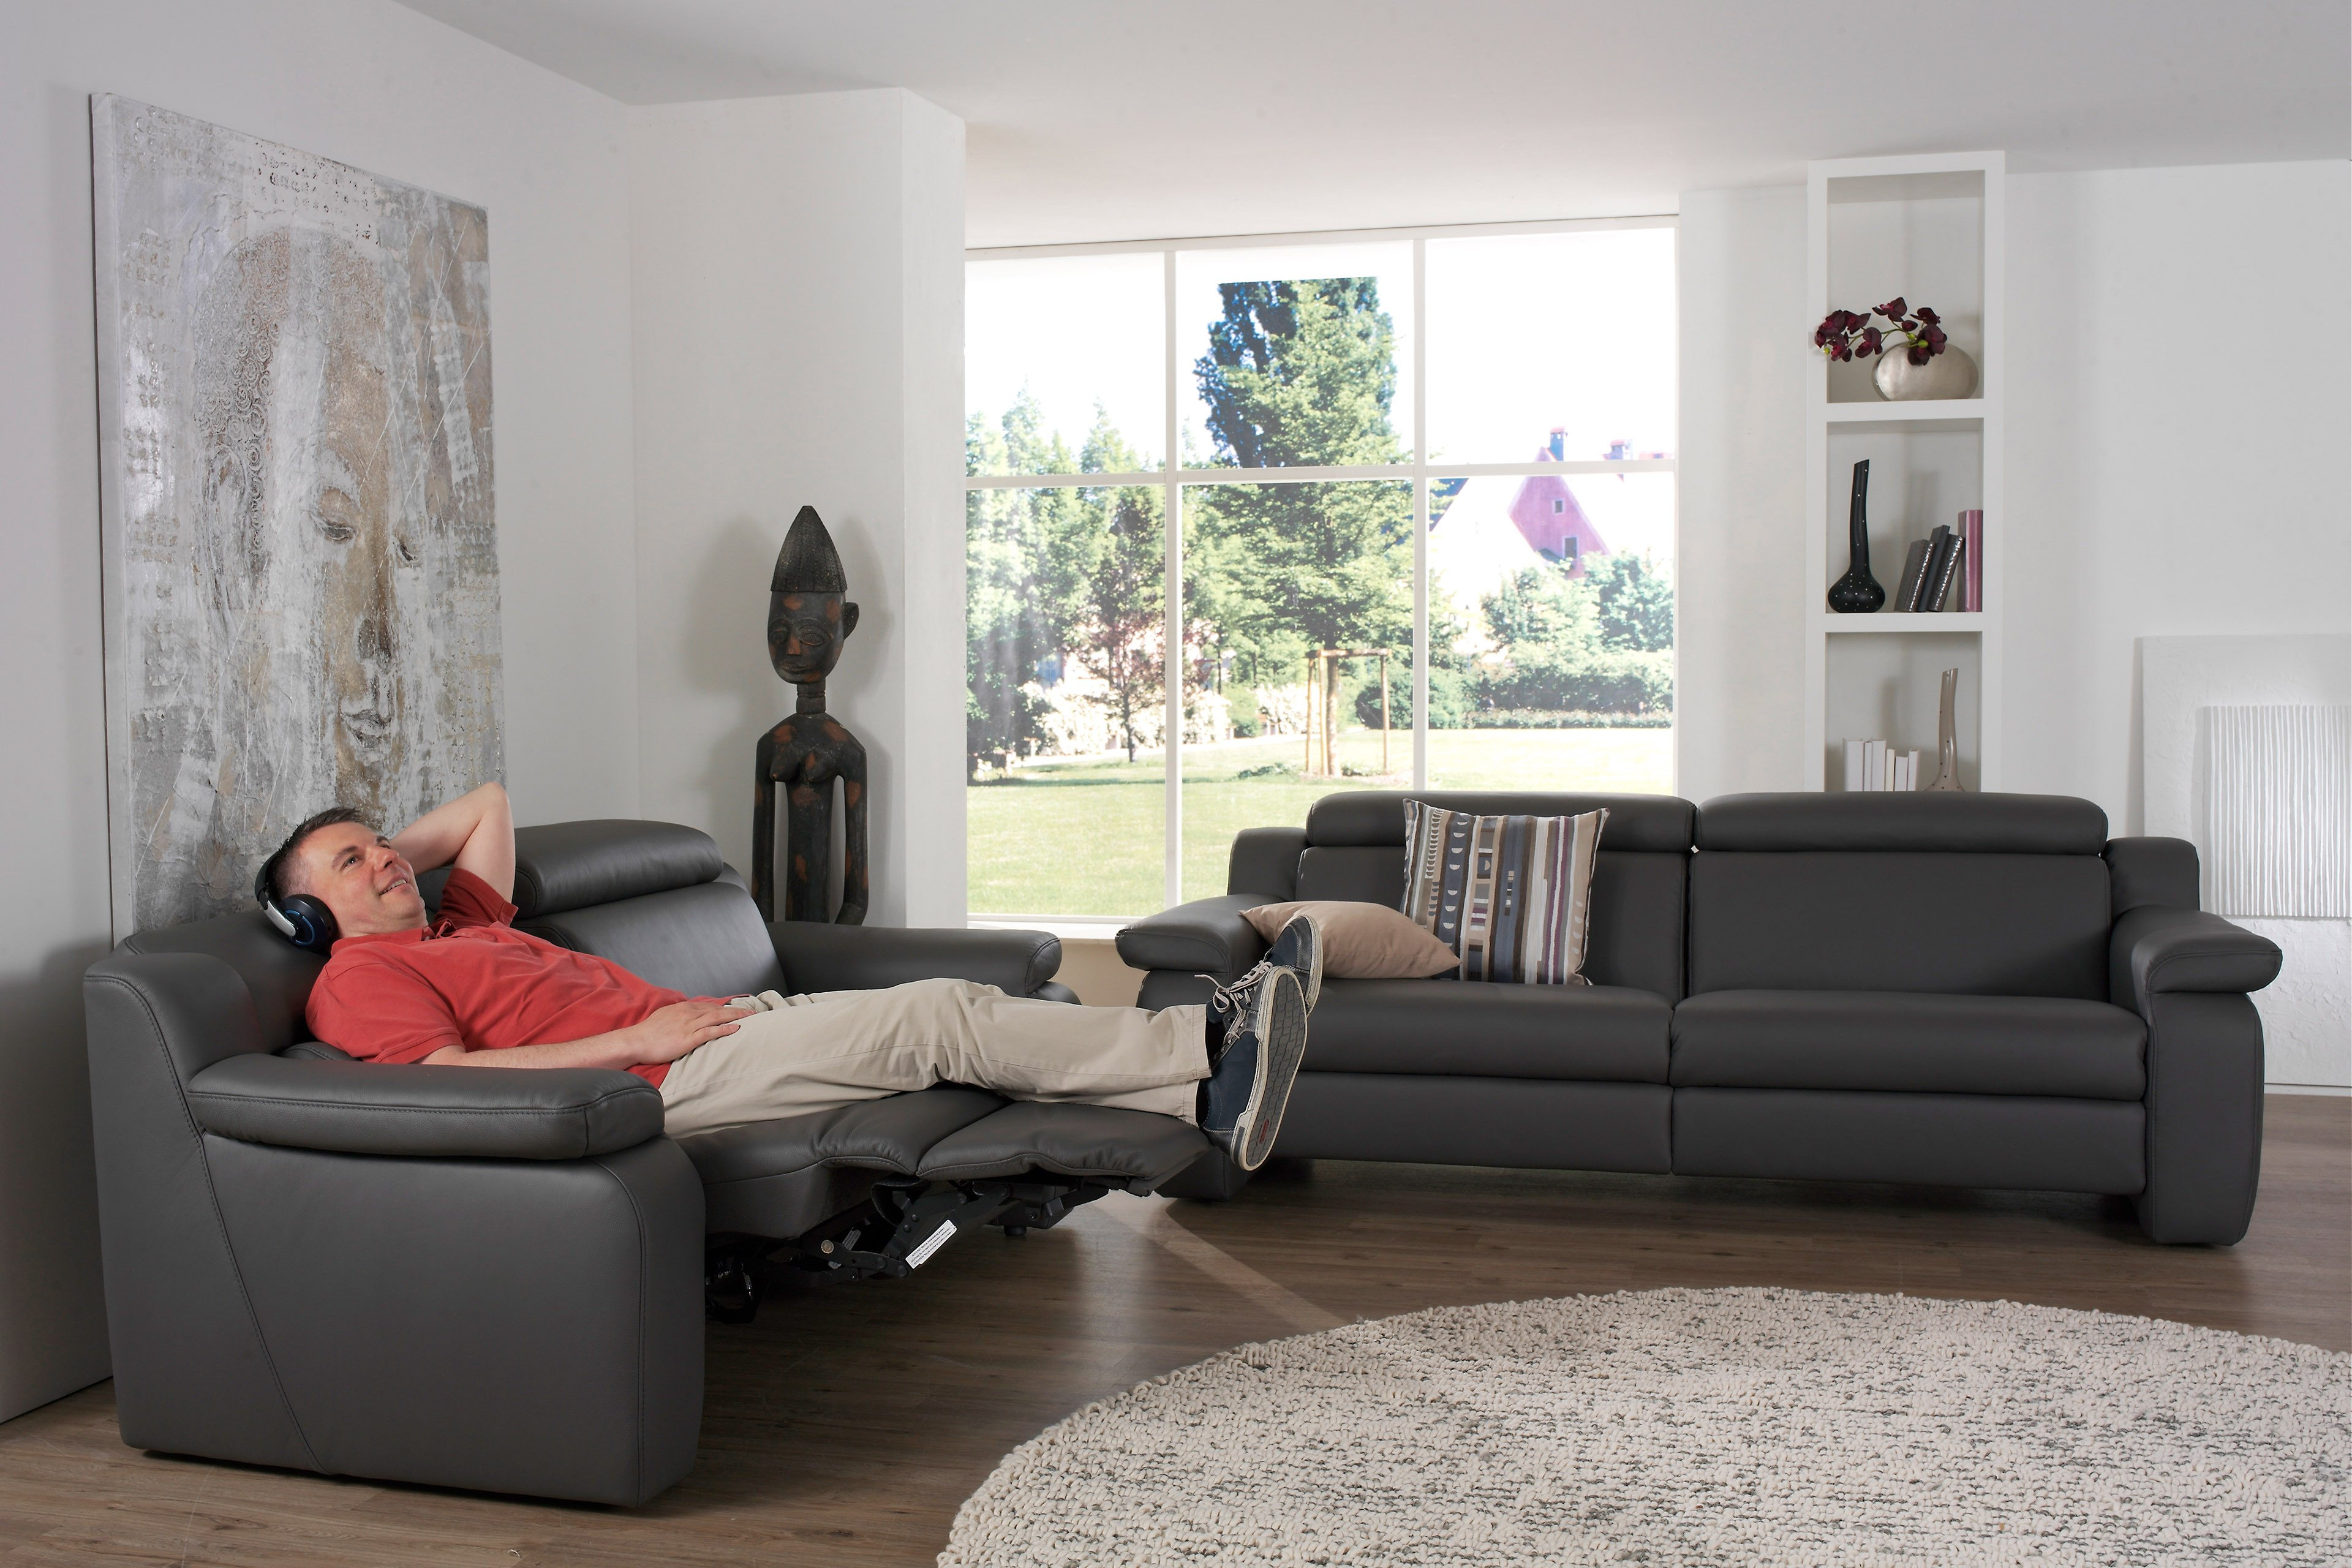 himolla polsterm bel 1302 ledersofa schwarz m bel letz ihr online shop. Black Bedroom Furniture Sets. Home Design Ideas